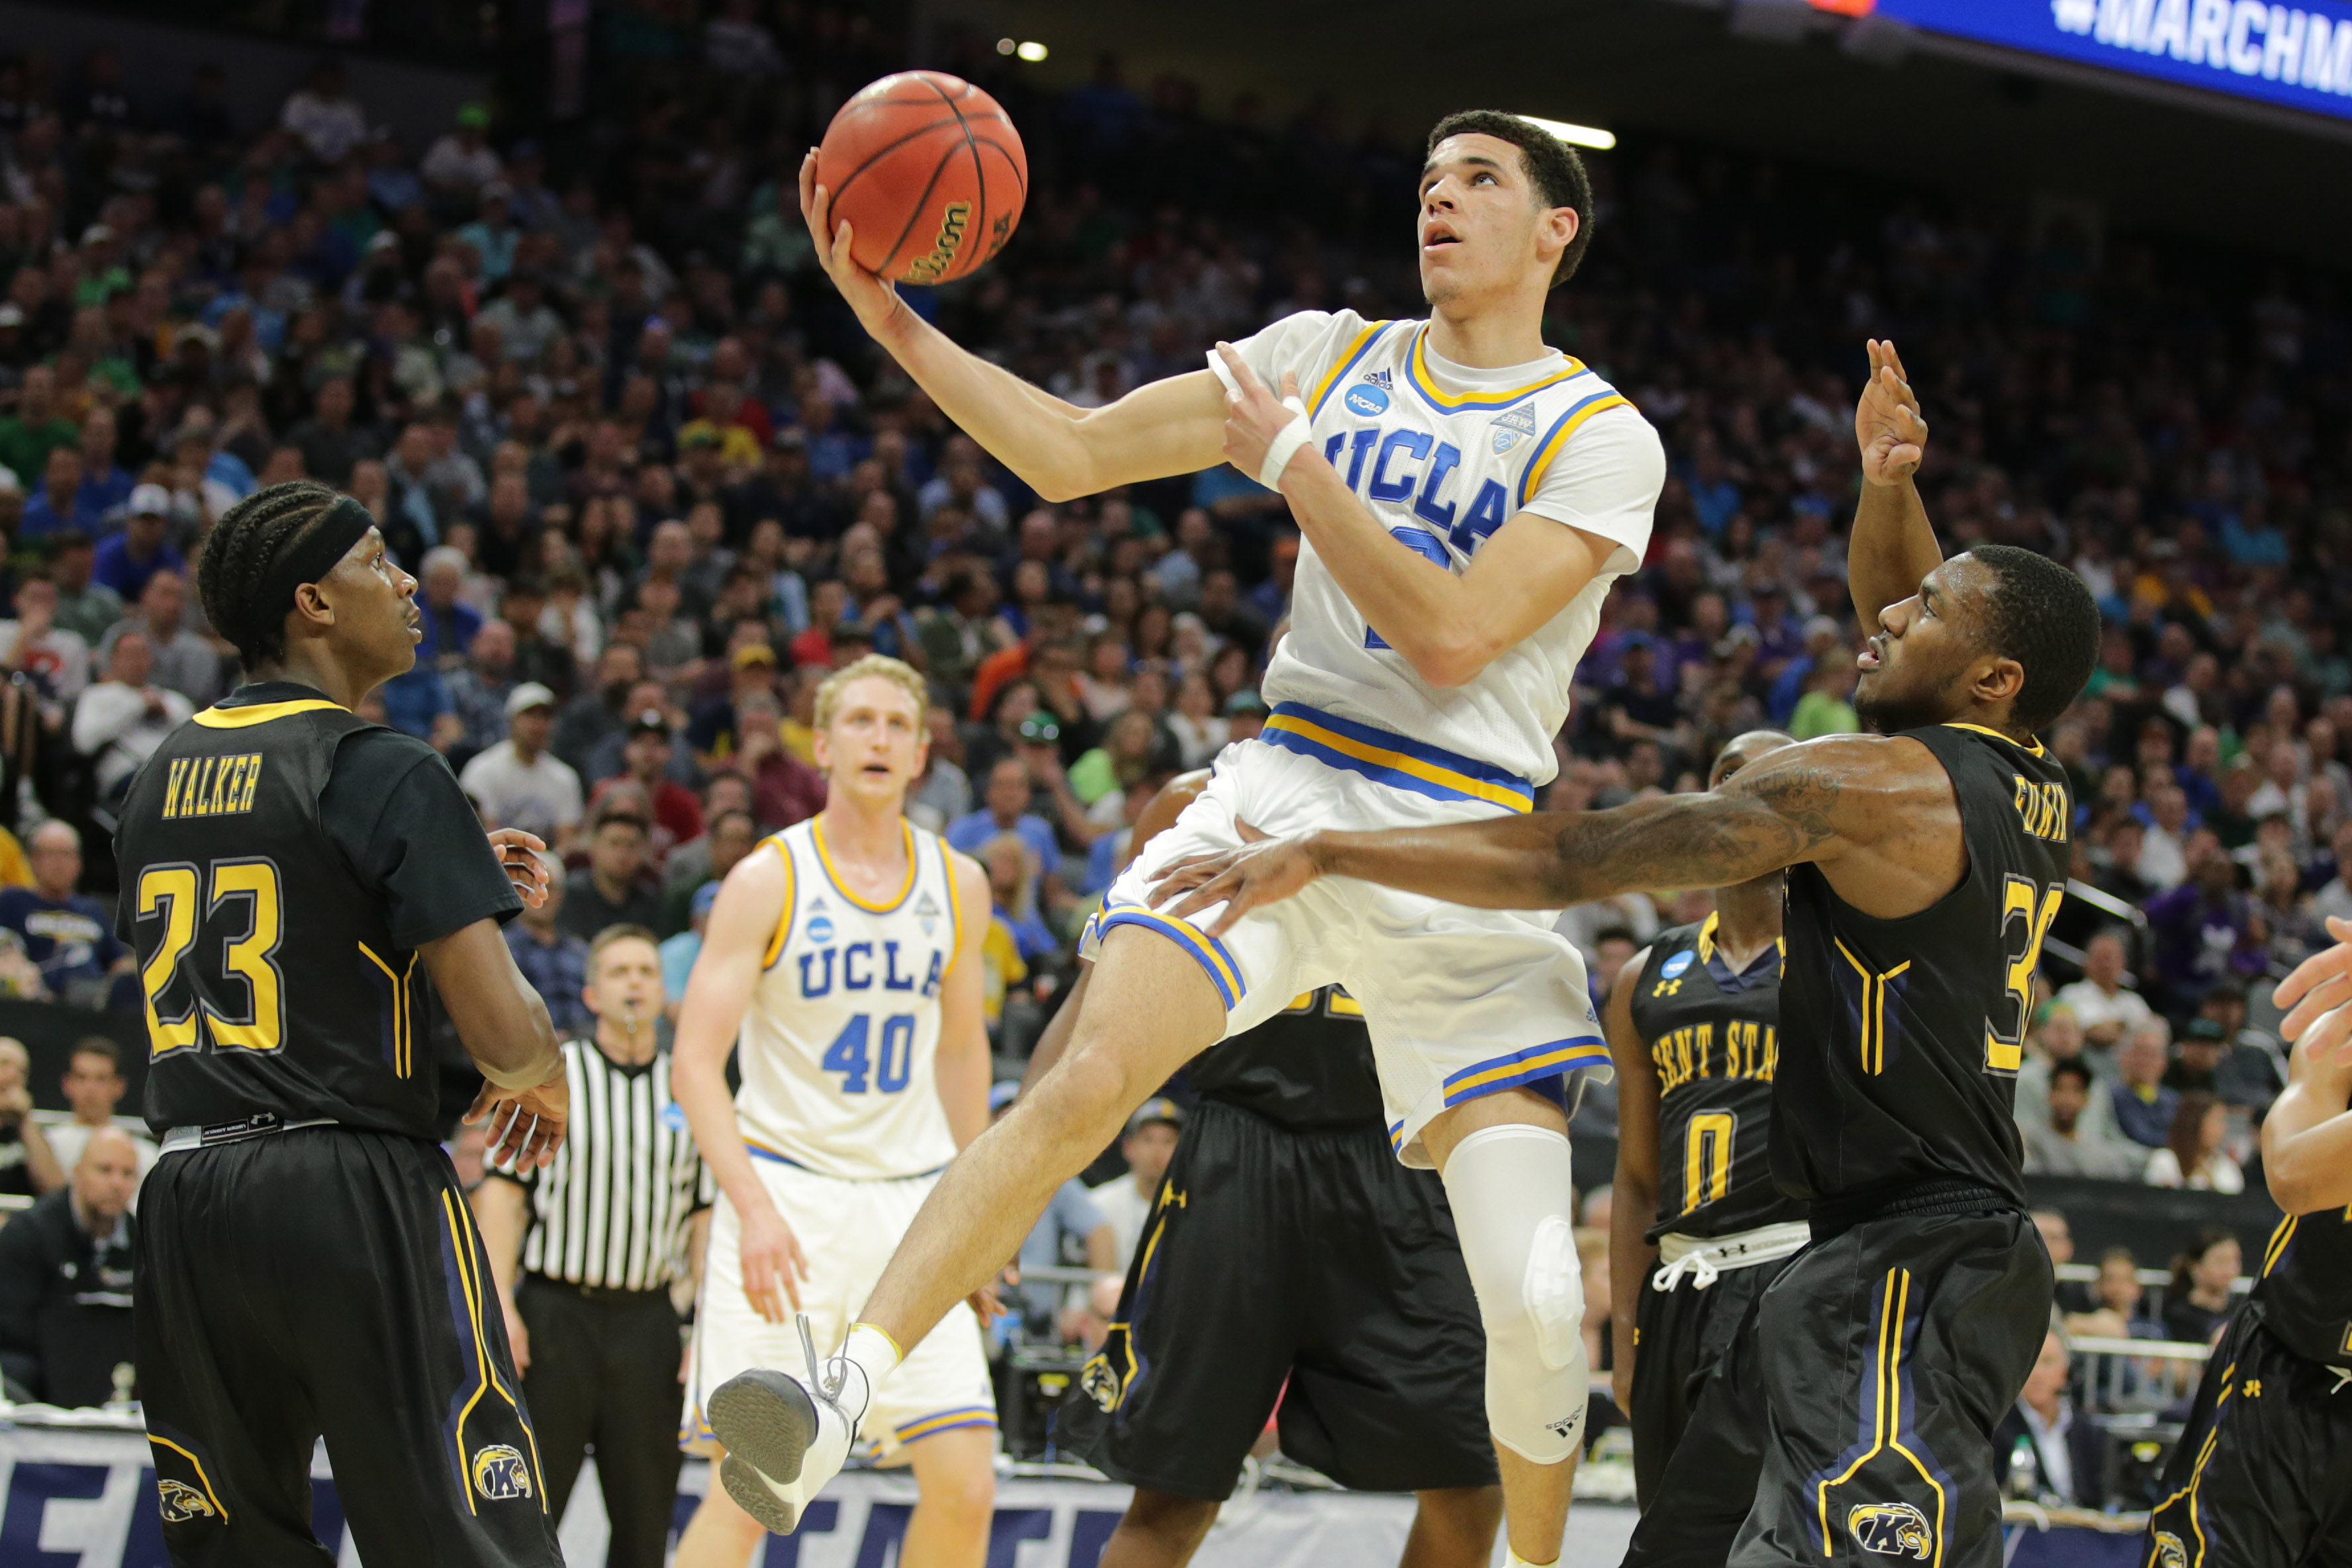 9951734-ncaa-basketball-ncaa-tournament-first-round-kent-state-and-ucla-bruins-1